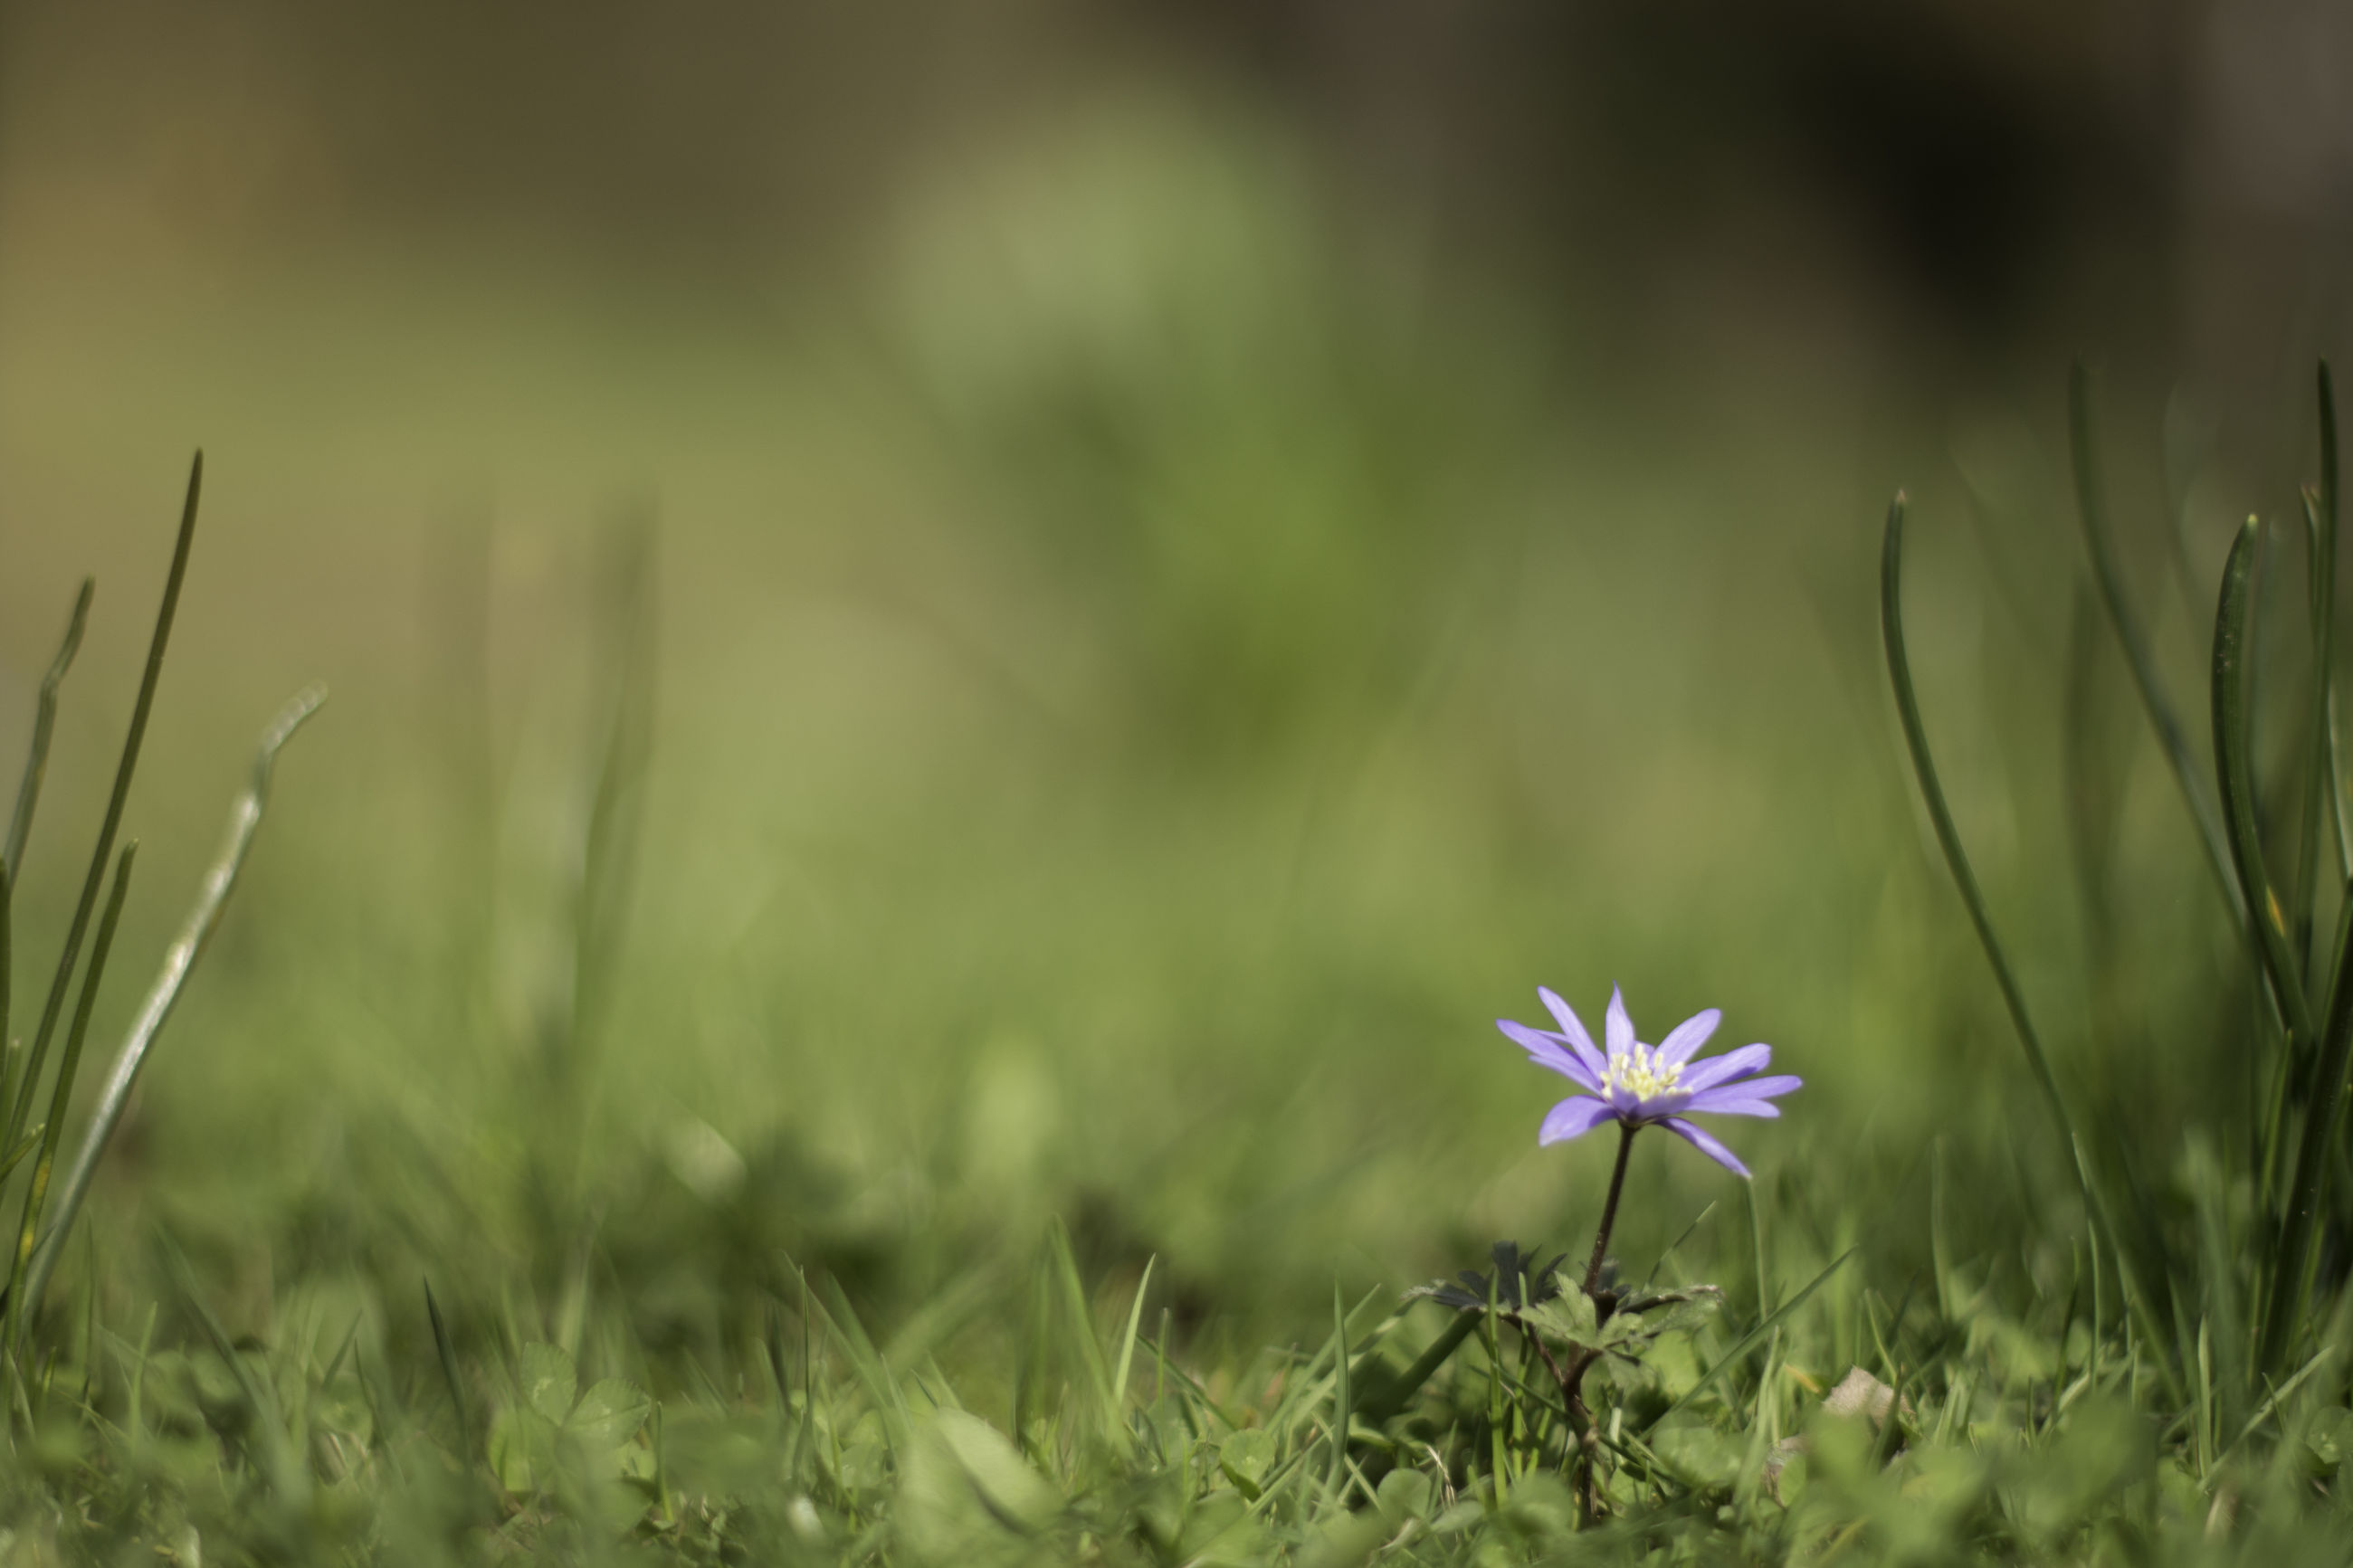 growth, nature, flower, fragility, beauty in nature, grass, plant, outdoors, freshness, no people, close-up, field, flower head, day